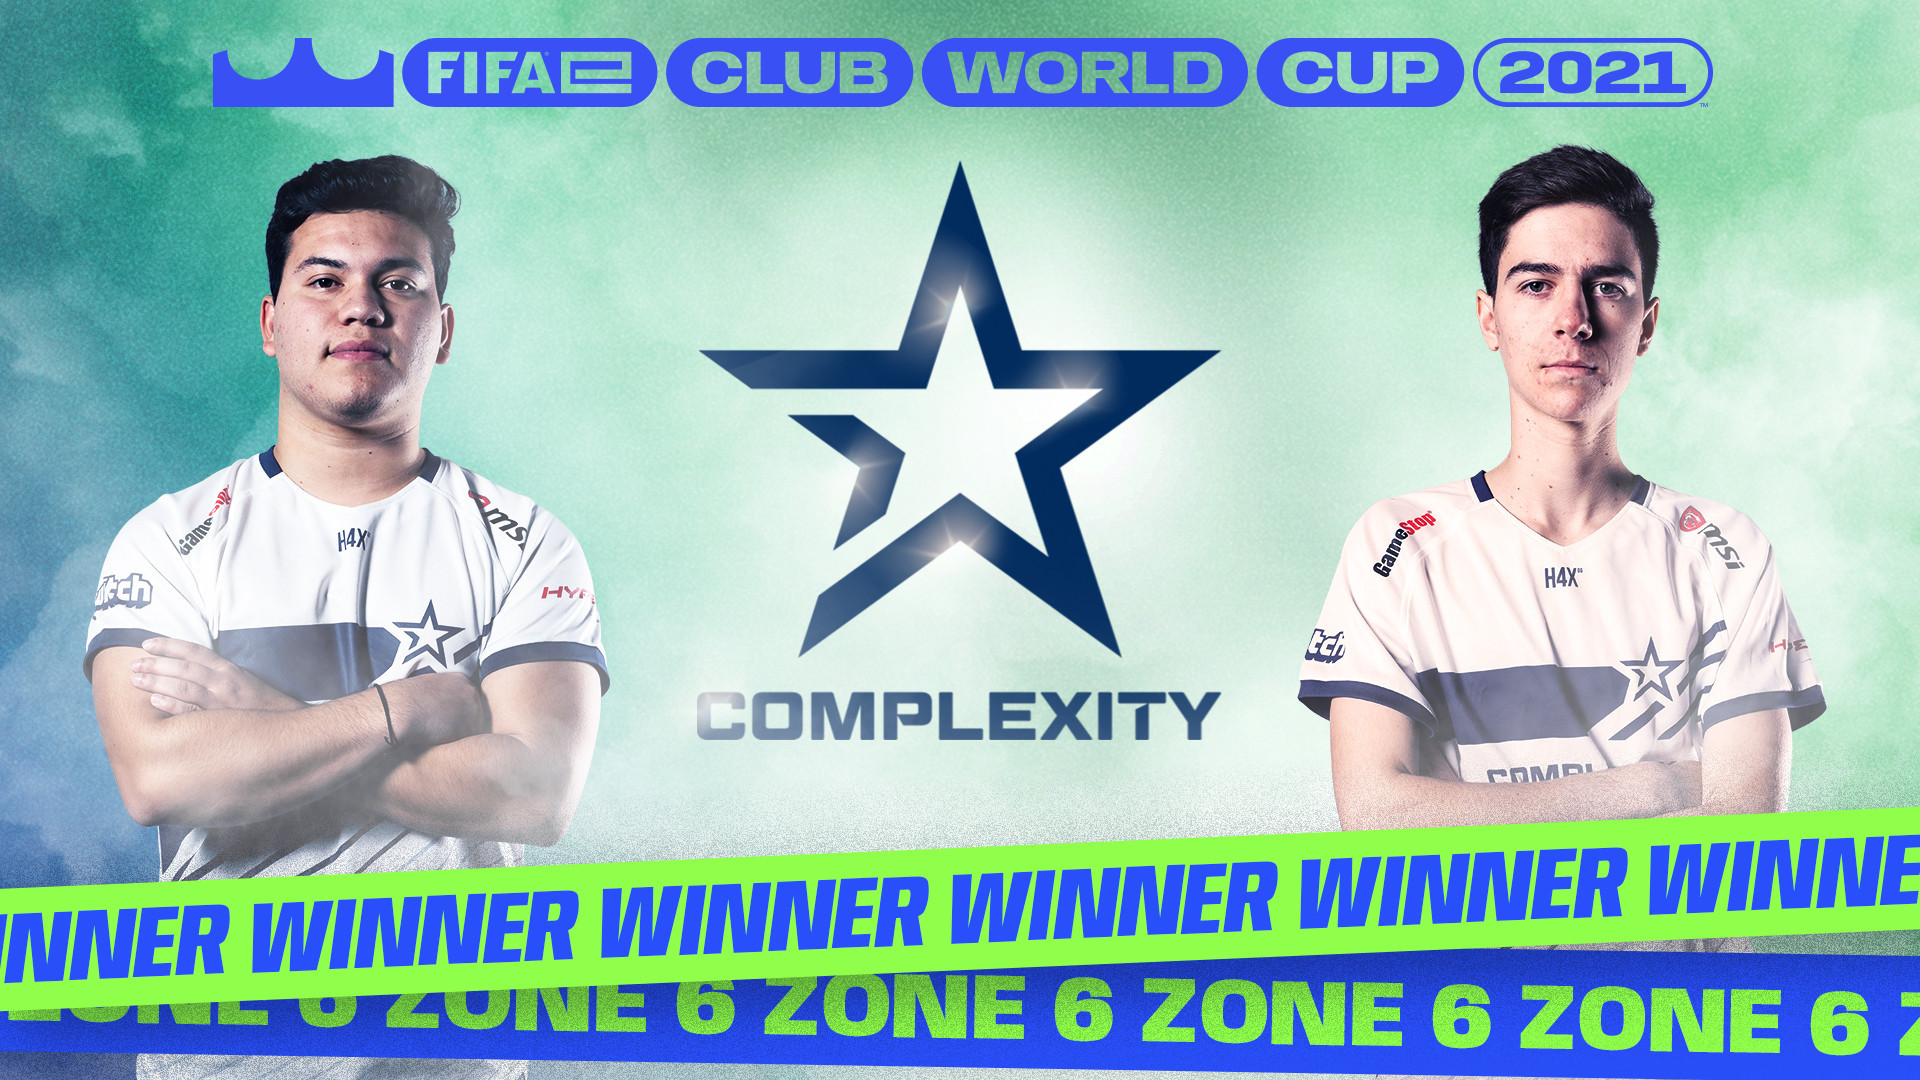 Concluding zone winners decided at FIFAe Club World Cup